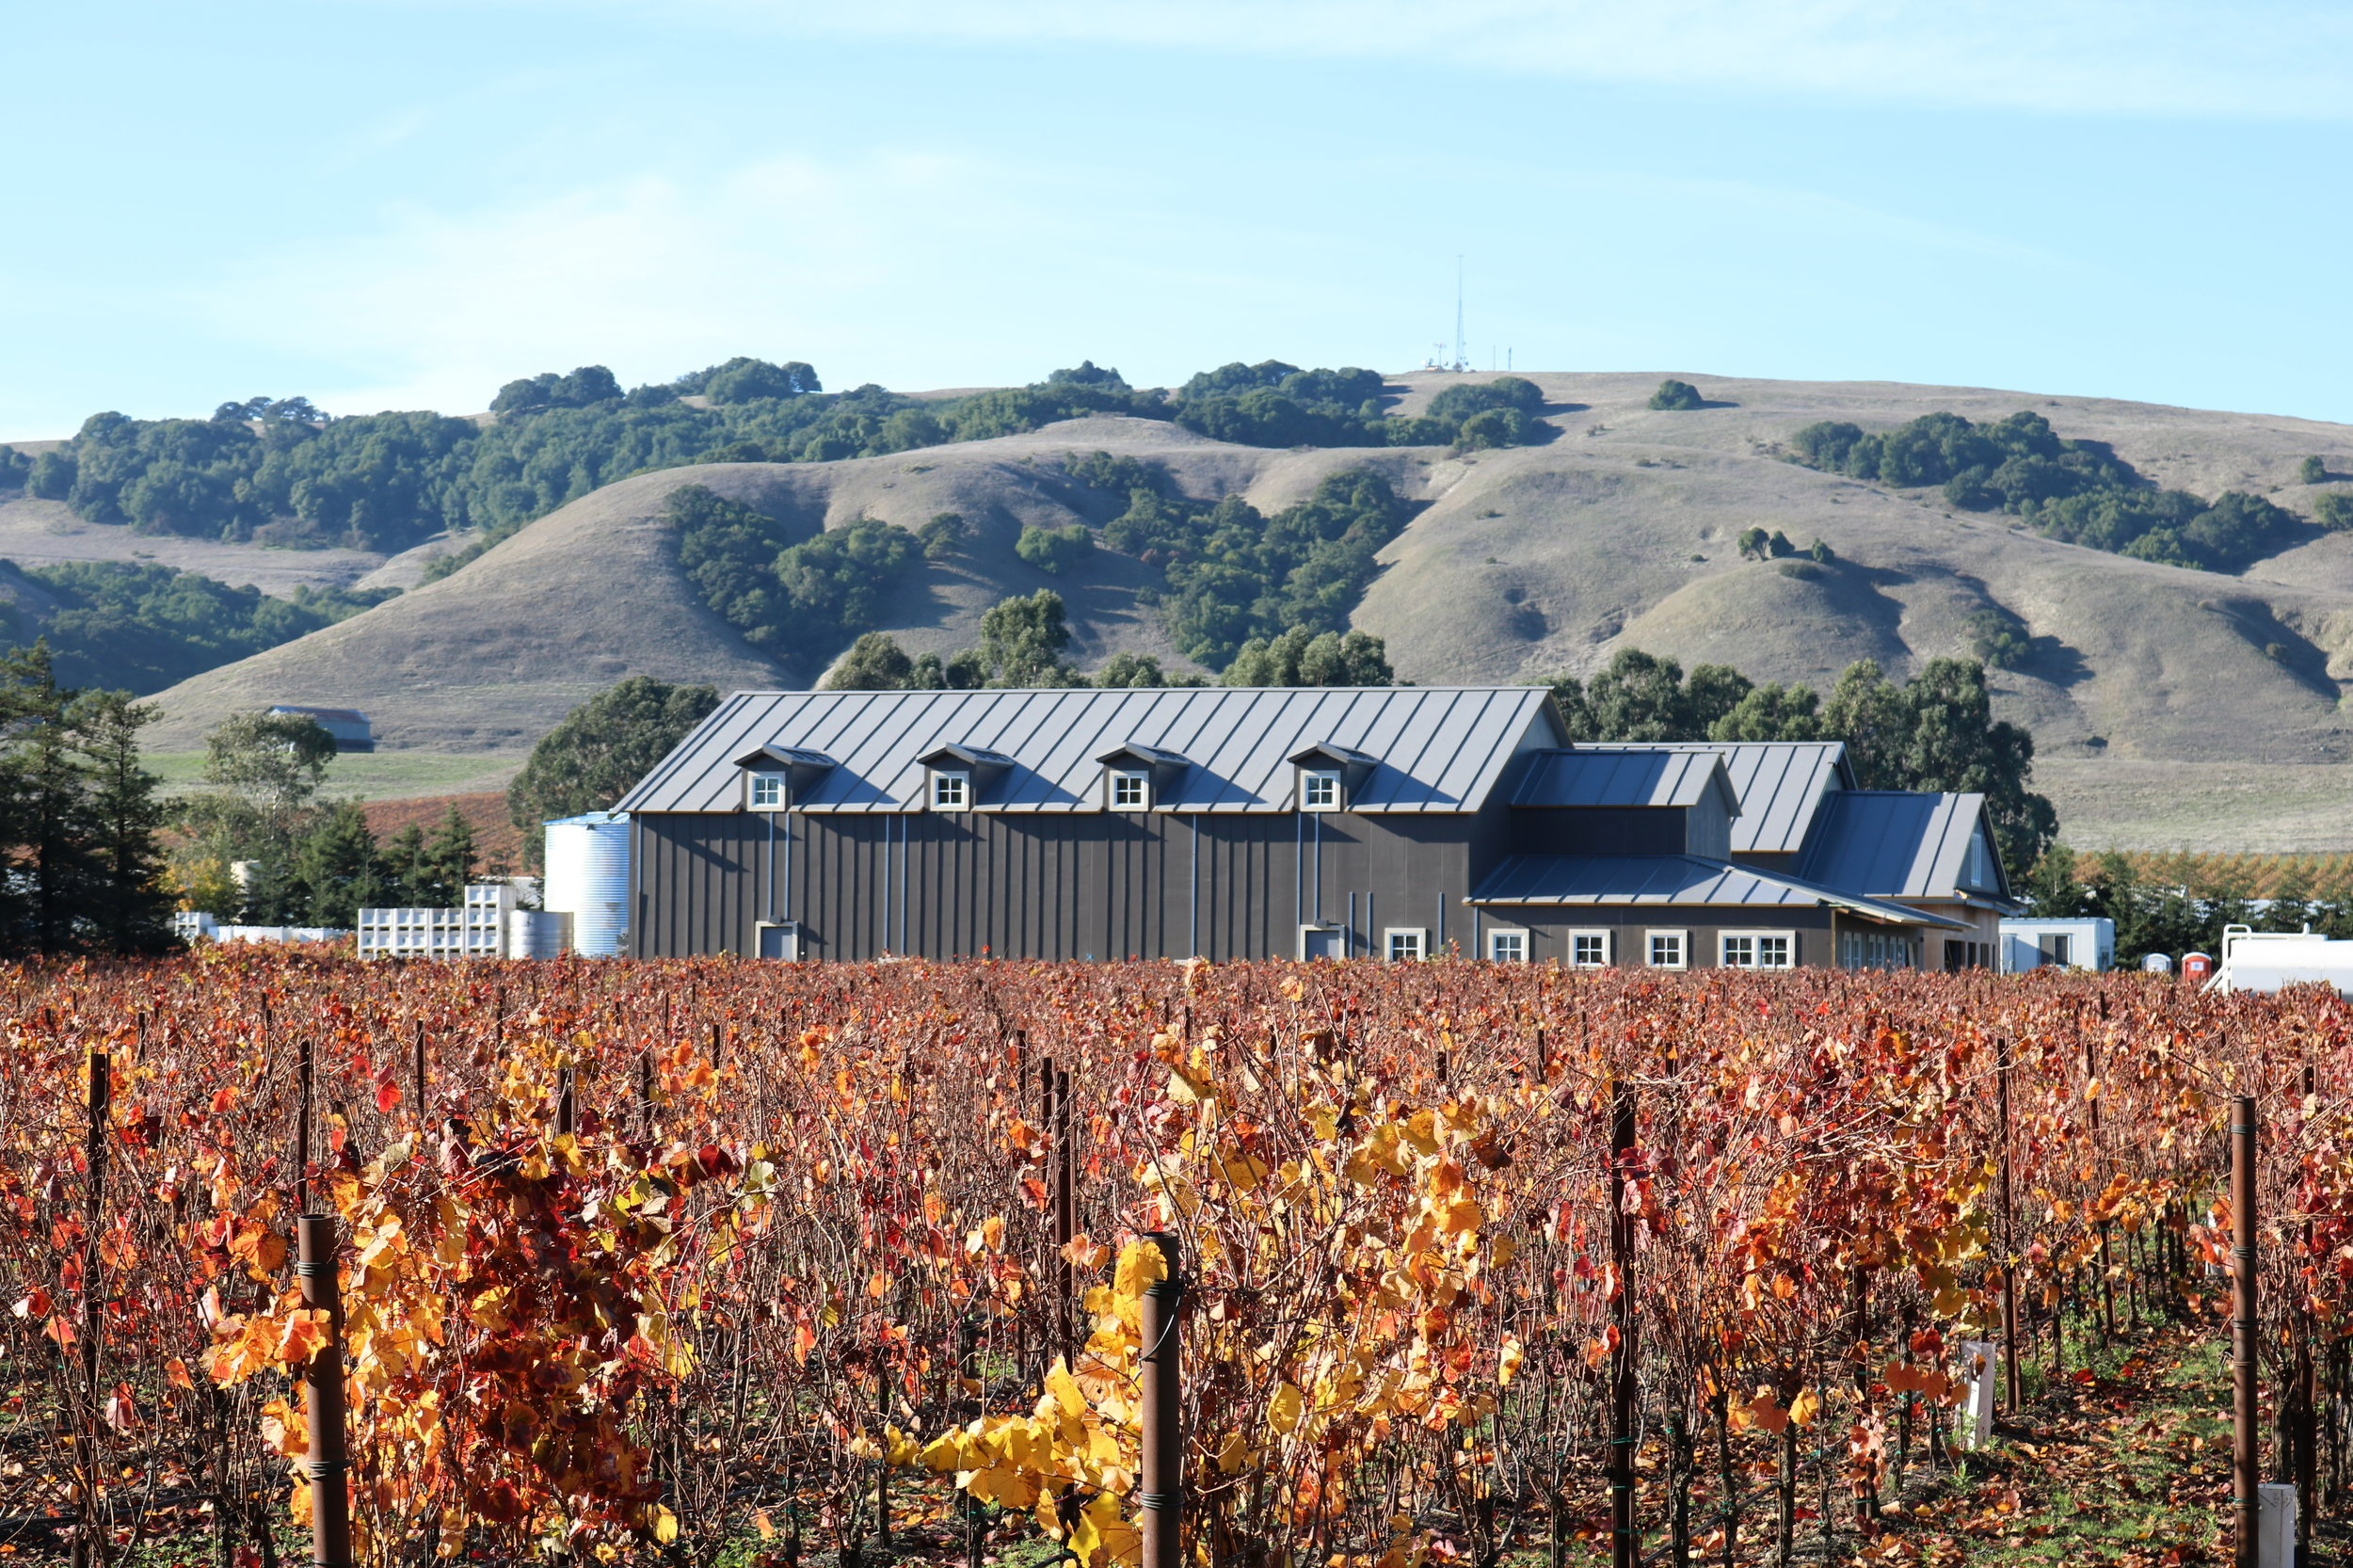 Carneros Chronicles - Visit here to discover what is happening at our flagship Sonoma Carneros winery. Read the latest musings from our winemaker, Michael Carr, and hear about updates in and around our vineyards.